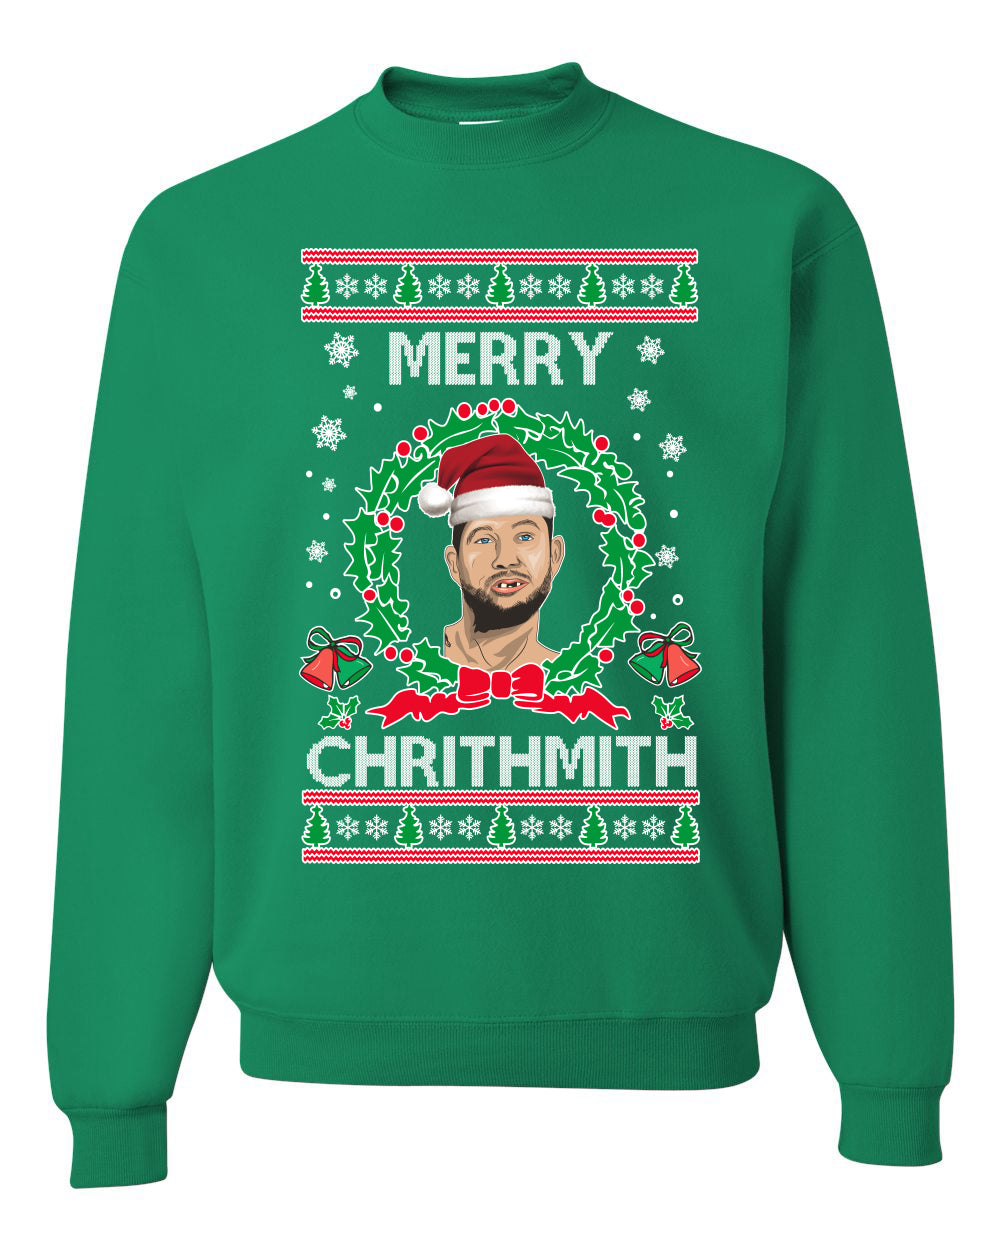 Merry Chrithmith John Finlay Lisp Tiger King Christmas Unisex Crewneck Graphic Sweatshirt